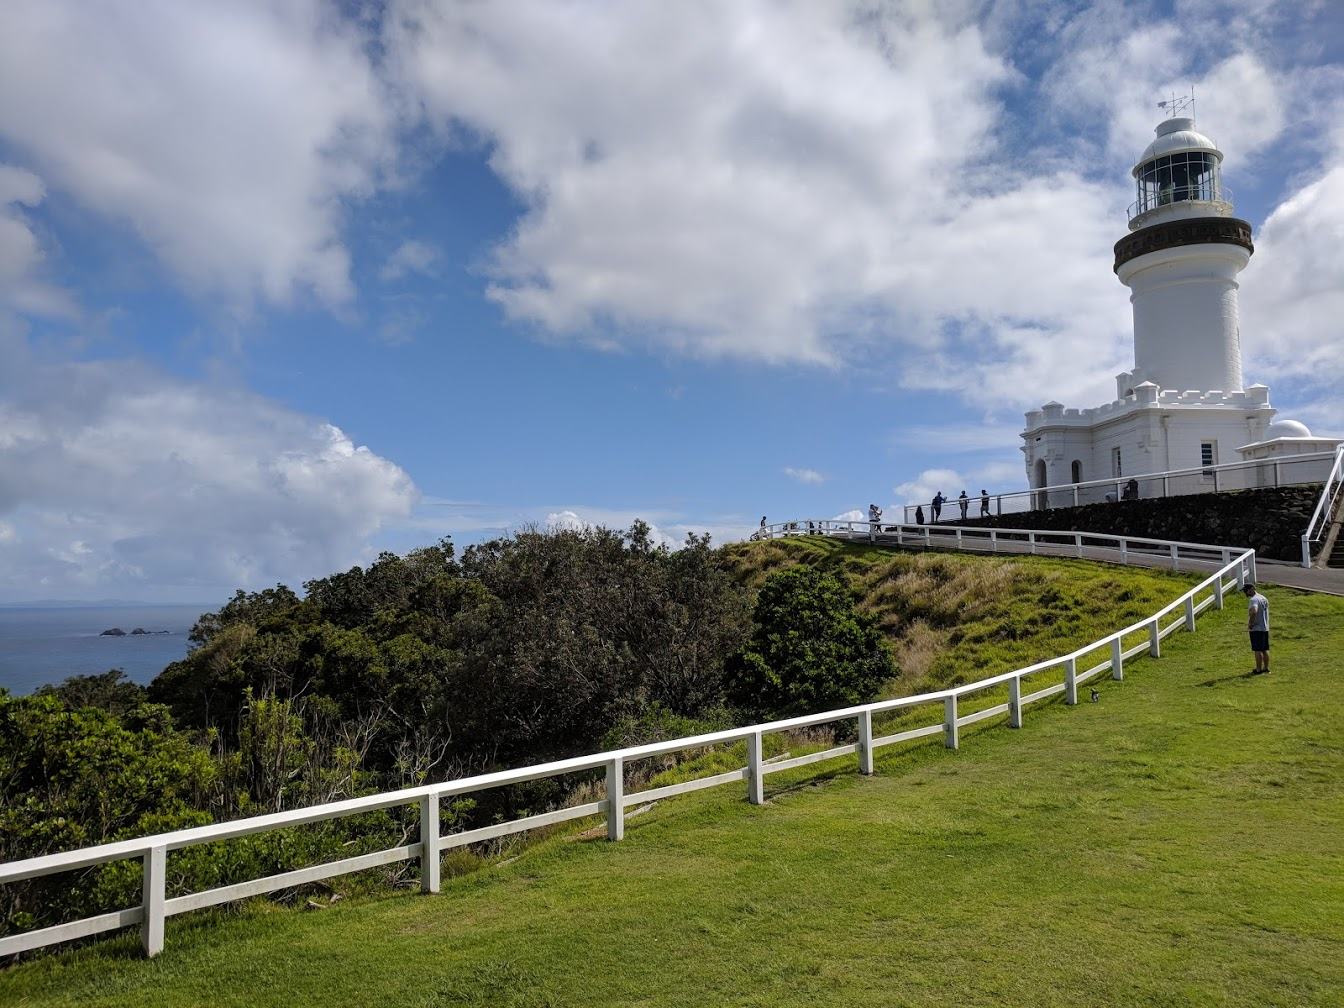 Cape Byron Lighthouse - Cape Byron Lighthouse is the Eastern-most point of Australia. It is 23m in height and opened in 1901, with another unique element being that it has a castle-looking building at its base. Positioned high atop a cliff on our eastern boundary, it is probably the best place to view migrating whales during visits from May to November.